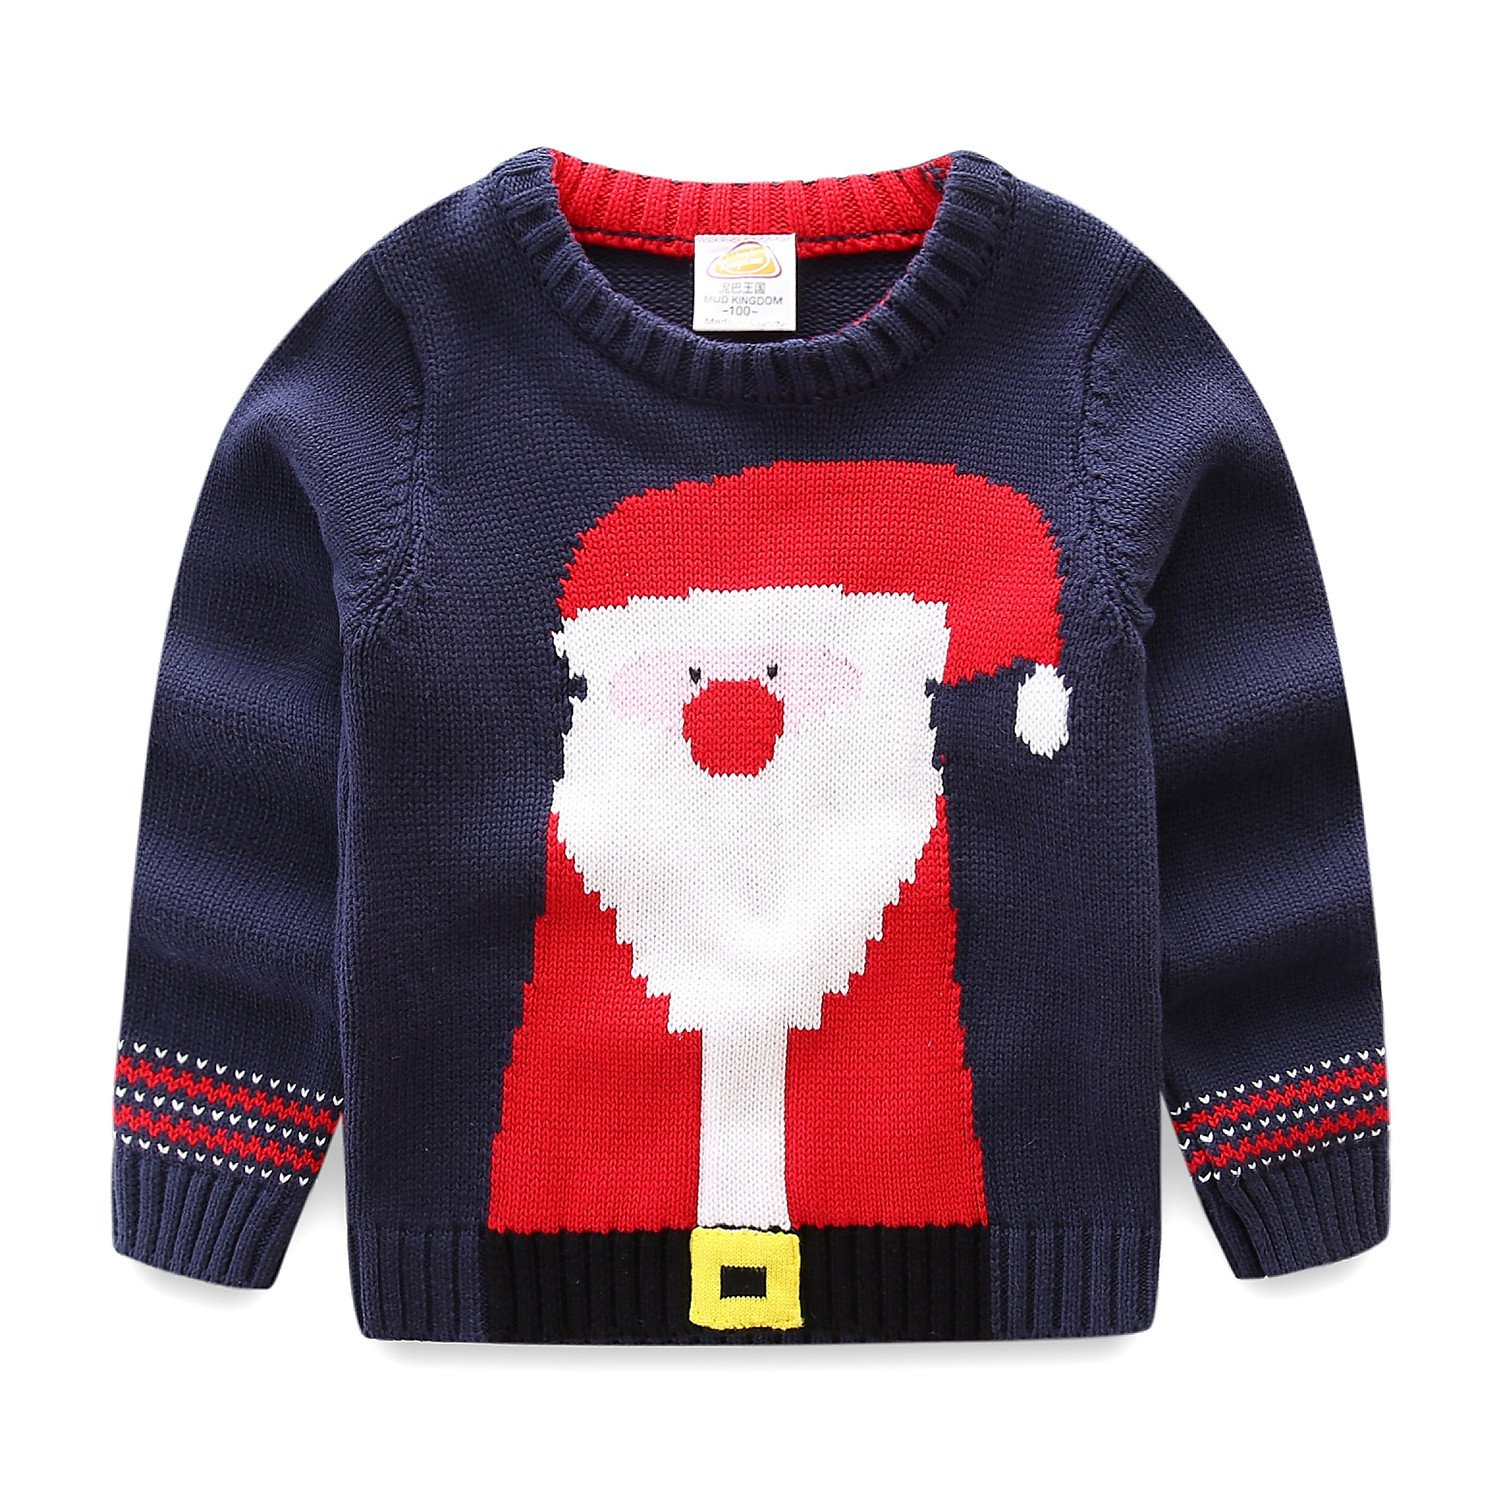 UWESPRING Little Boy Crewneck Santa Knit Sweater Pullover Christmas Clothes Made in China